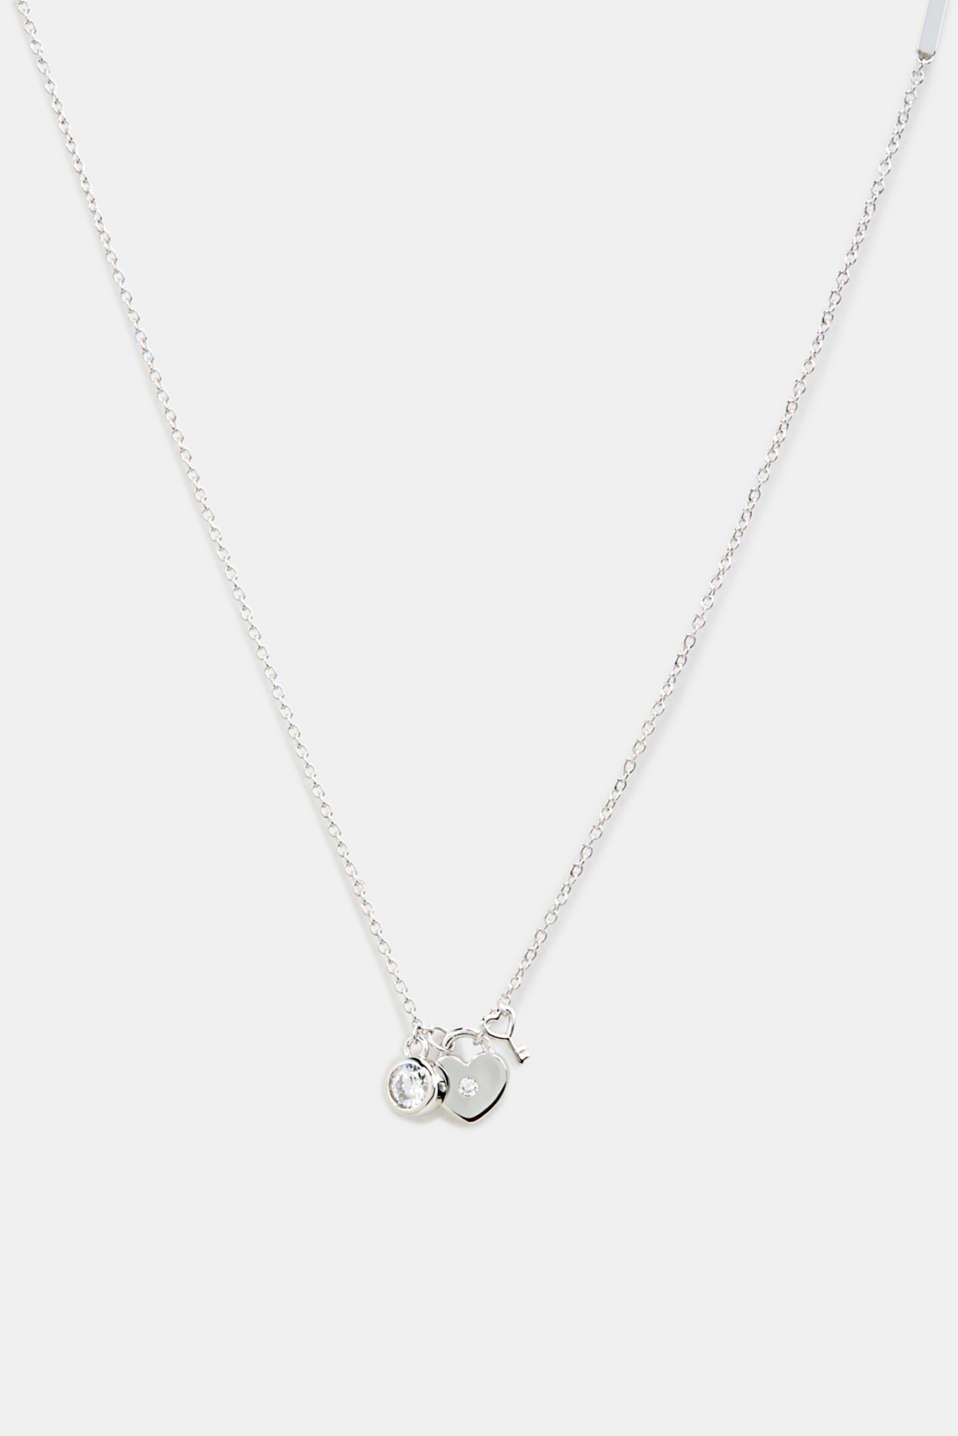 Esprit - Necklace with charms, sterling silver